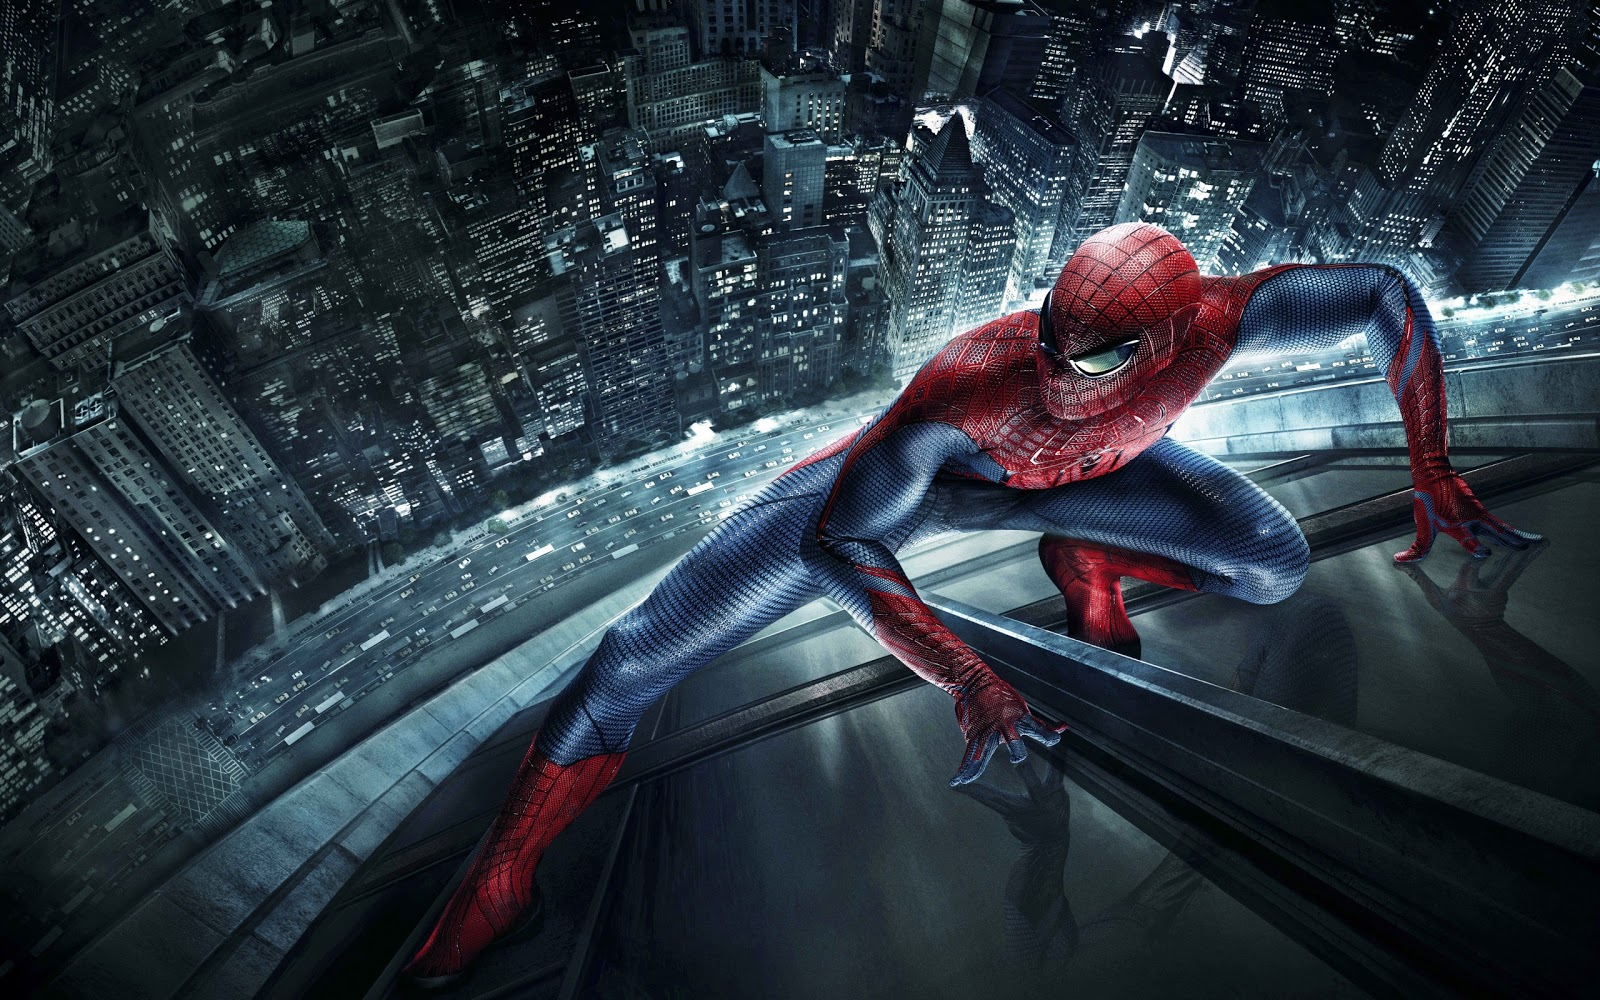 3d Spider Man Image Hd'